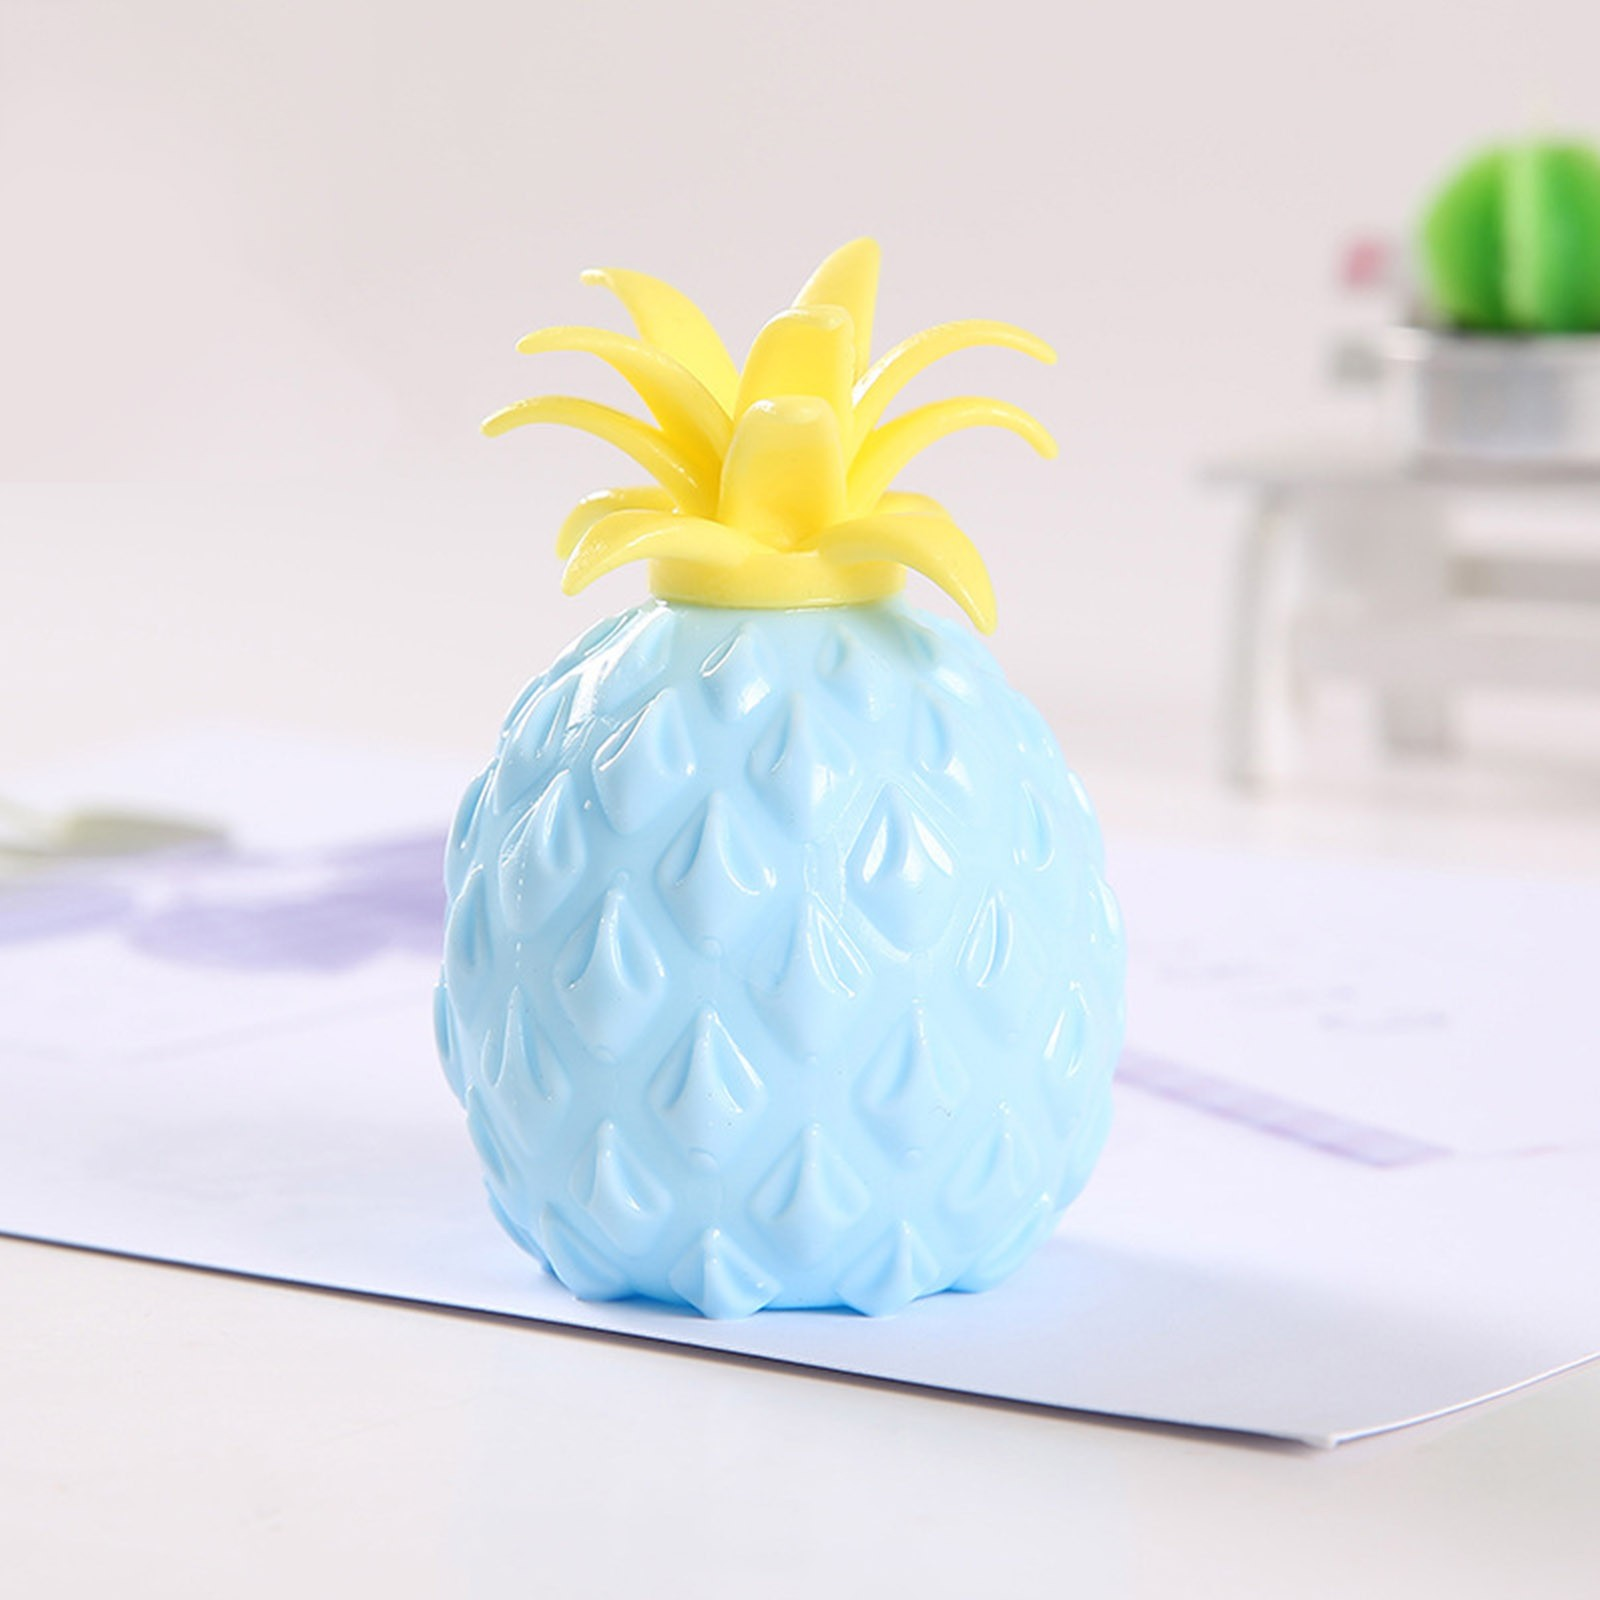 2021 Fidget Toys New Simulation Flour Pineapple Decompression Toy Office Pressure Release img4